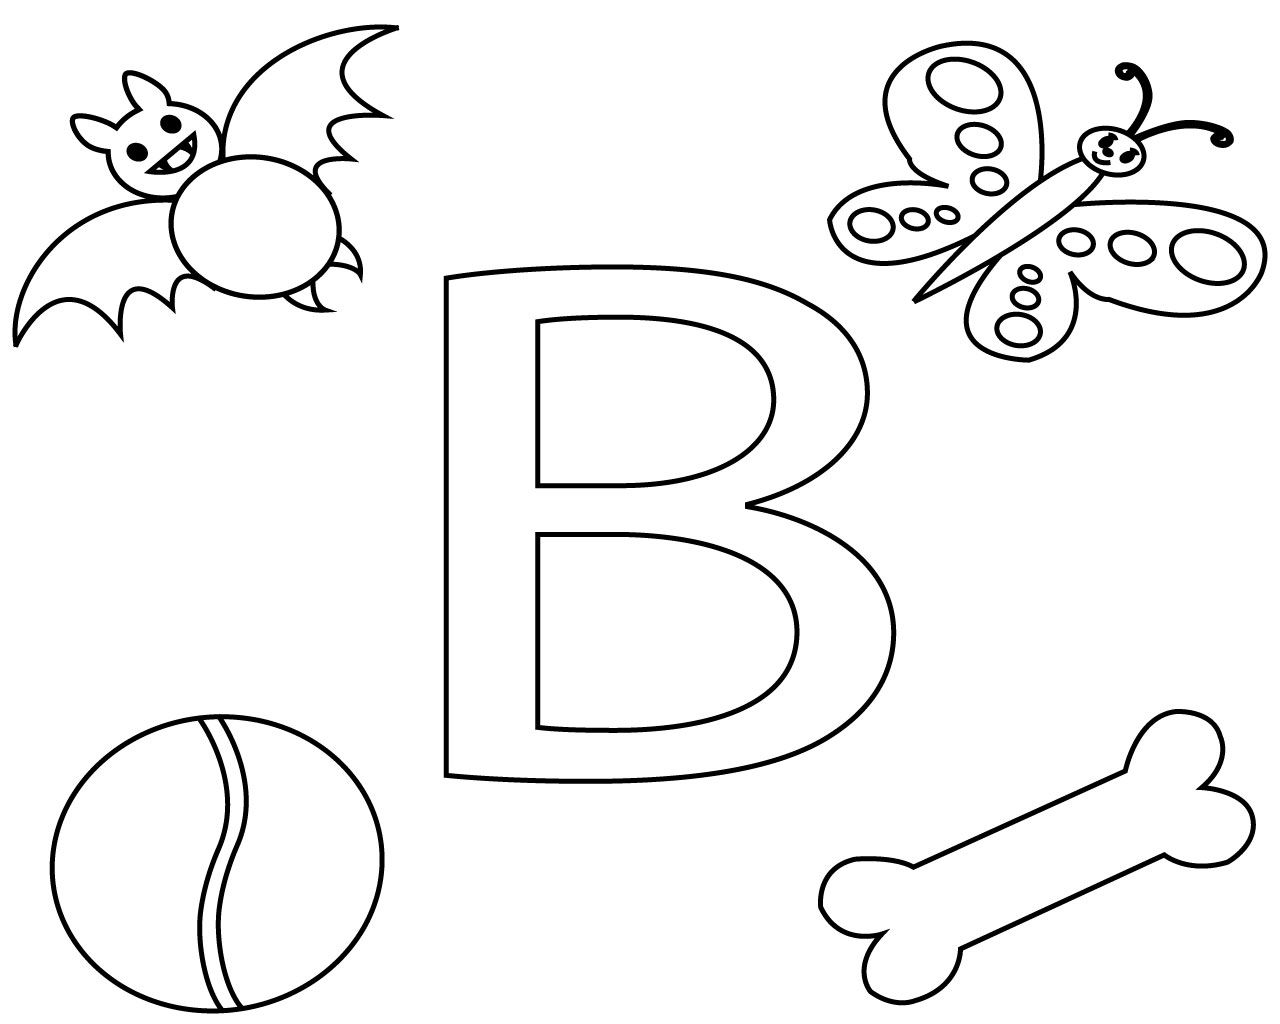 Printable Letter B Coloring Pages For Kids Letter B Coloring Pages